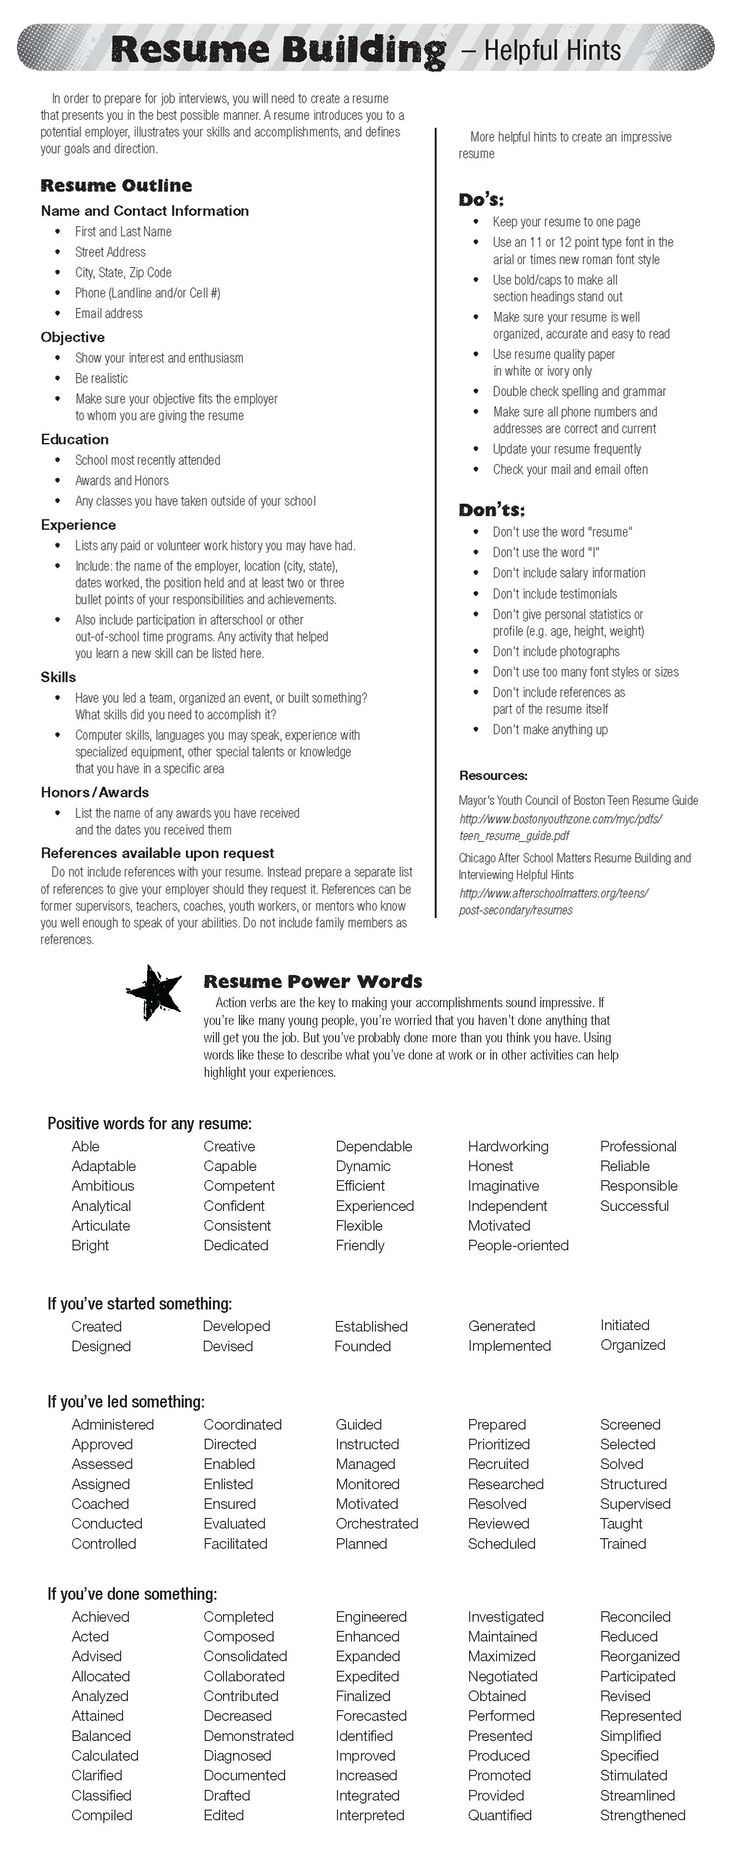 Opposenewapstandardsus  Stunning  Ideas About Resume On Pinterest  Cv Format Resume Cv And  With Entrancing  Ideas About Resume On Pinterest  Cv Format Resume Cv And Resume Templates With Beautiful High School Student Resume For College Also Professional Profile On Resume In Addition How To Make A Resume For Teens And Resume Profile Statement Examples As Well As Resume Goals Additionally Software Development Manager Resume From Pinterestcom With Opposenewapstandardsus  Entrancing  Ideas About Resume On Pinterest  Cv Format Resume Cv And  With Beautiful  Ideas About Resume On Pinterest  Cv Format Resume Cv And Resume Templates And Stunning High School Student Resume For College Also Professional Profile On Resume In Addition How To Make A Resume For Teens From Pinterestcom